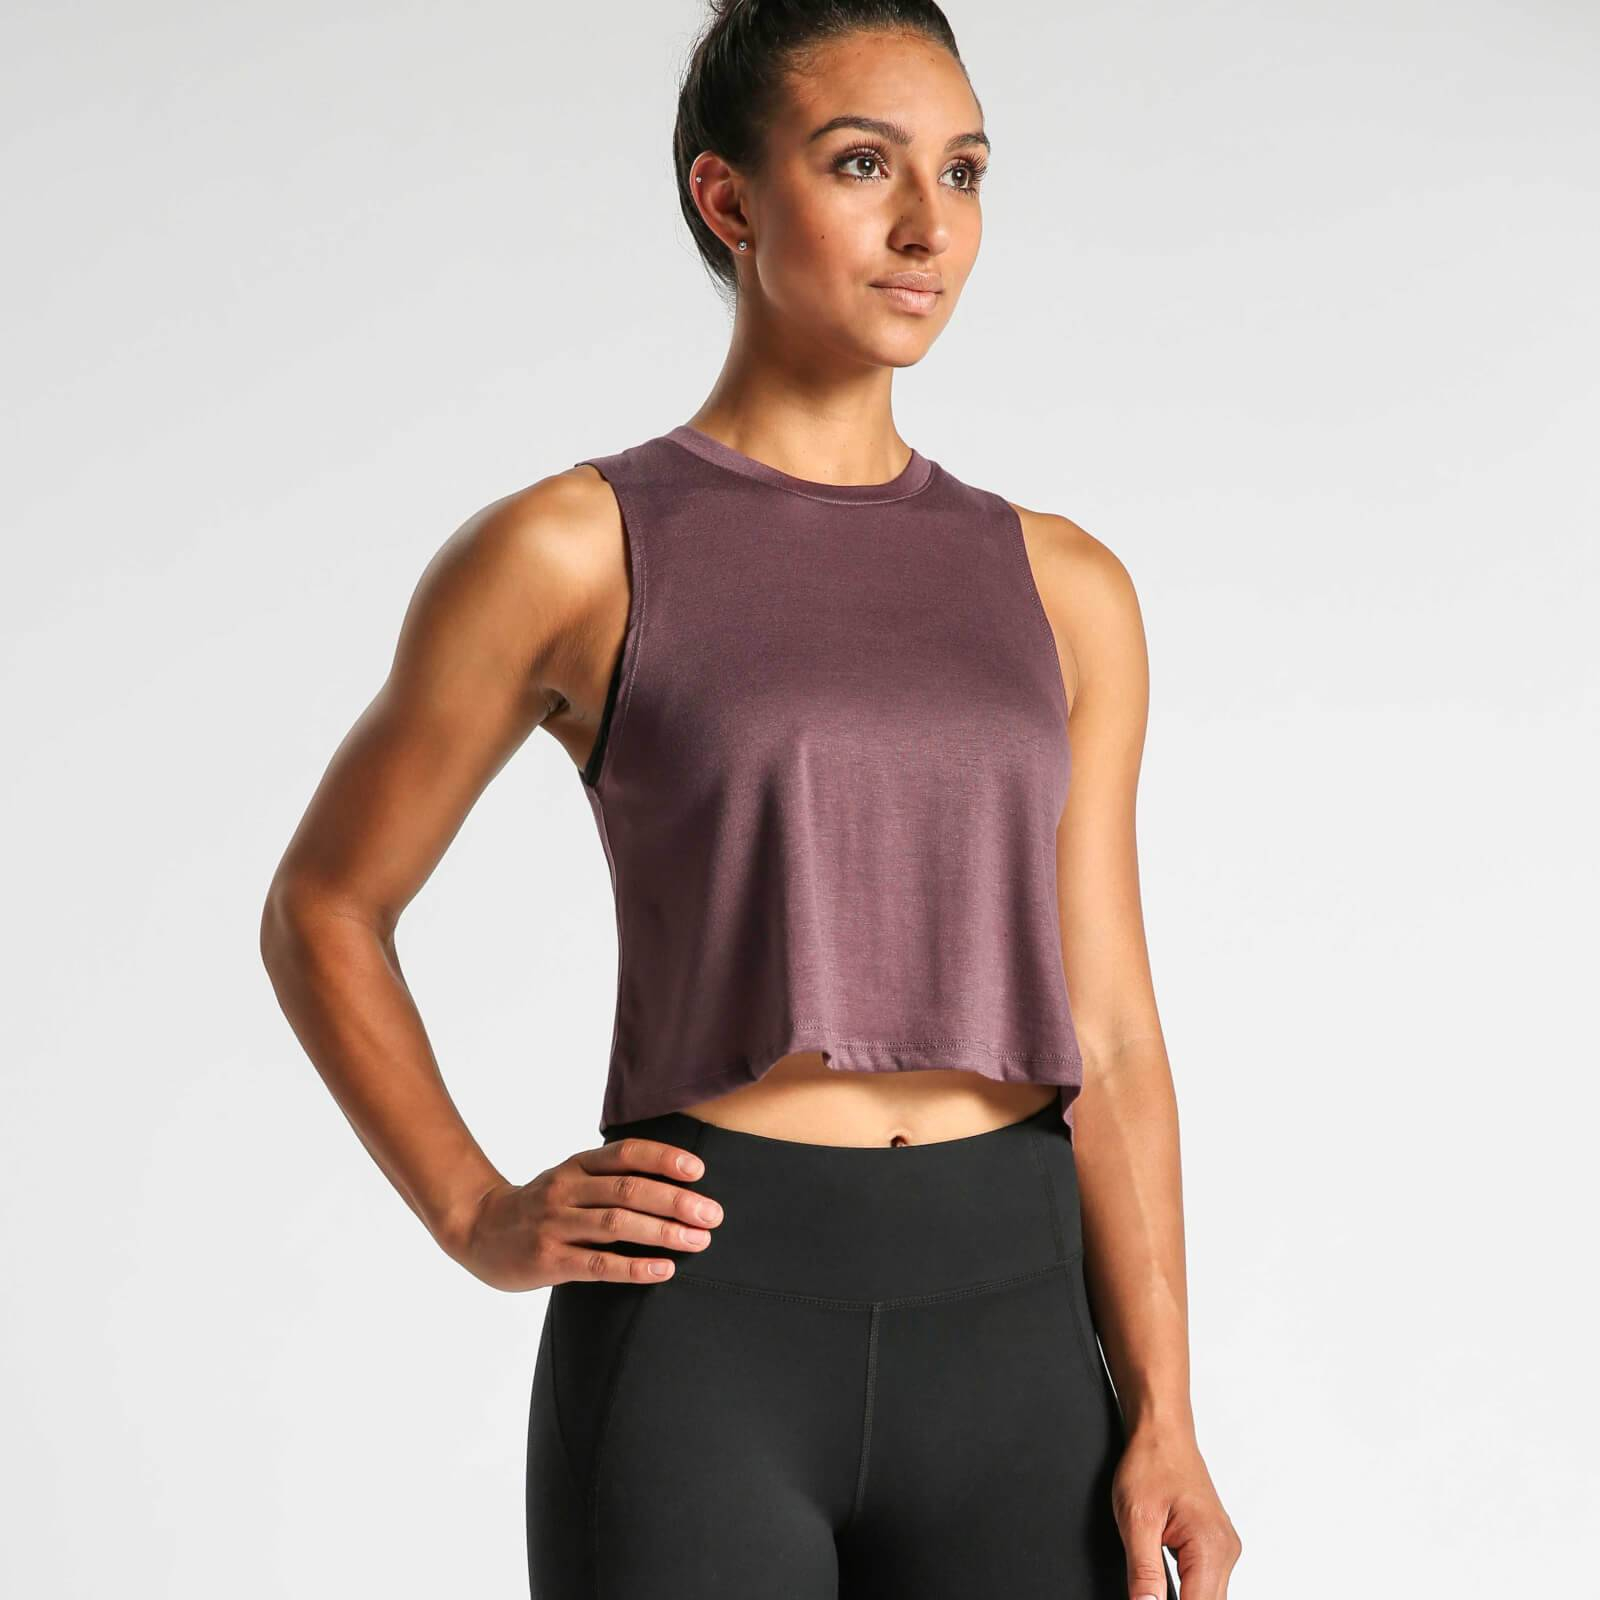 IdealFit Flowy Crop Top - Mauve - XL - Purple